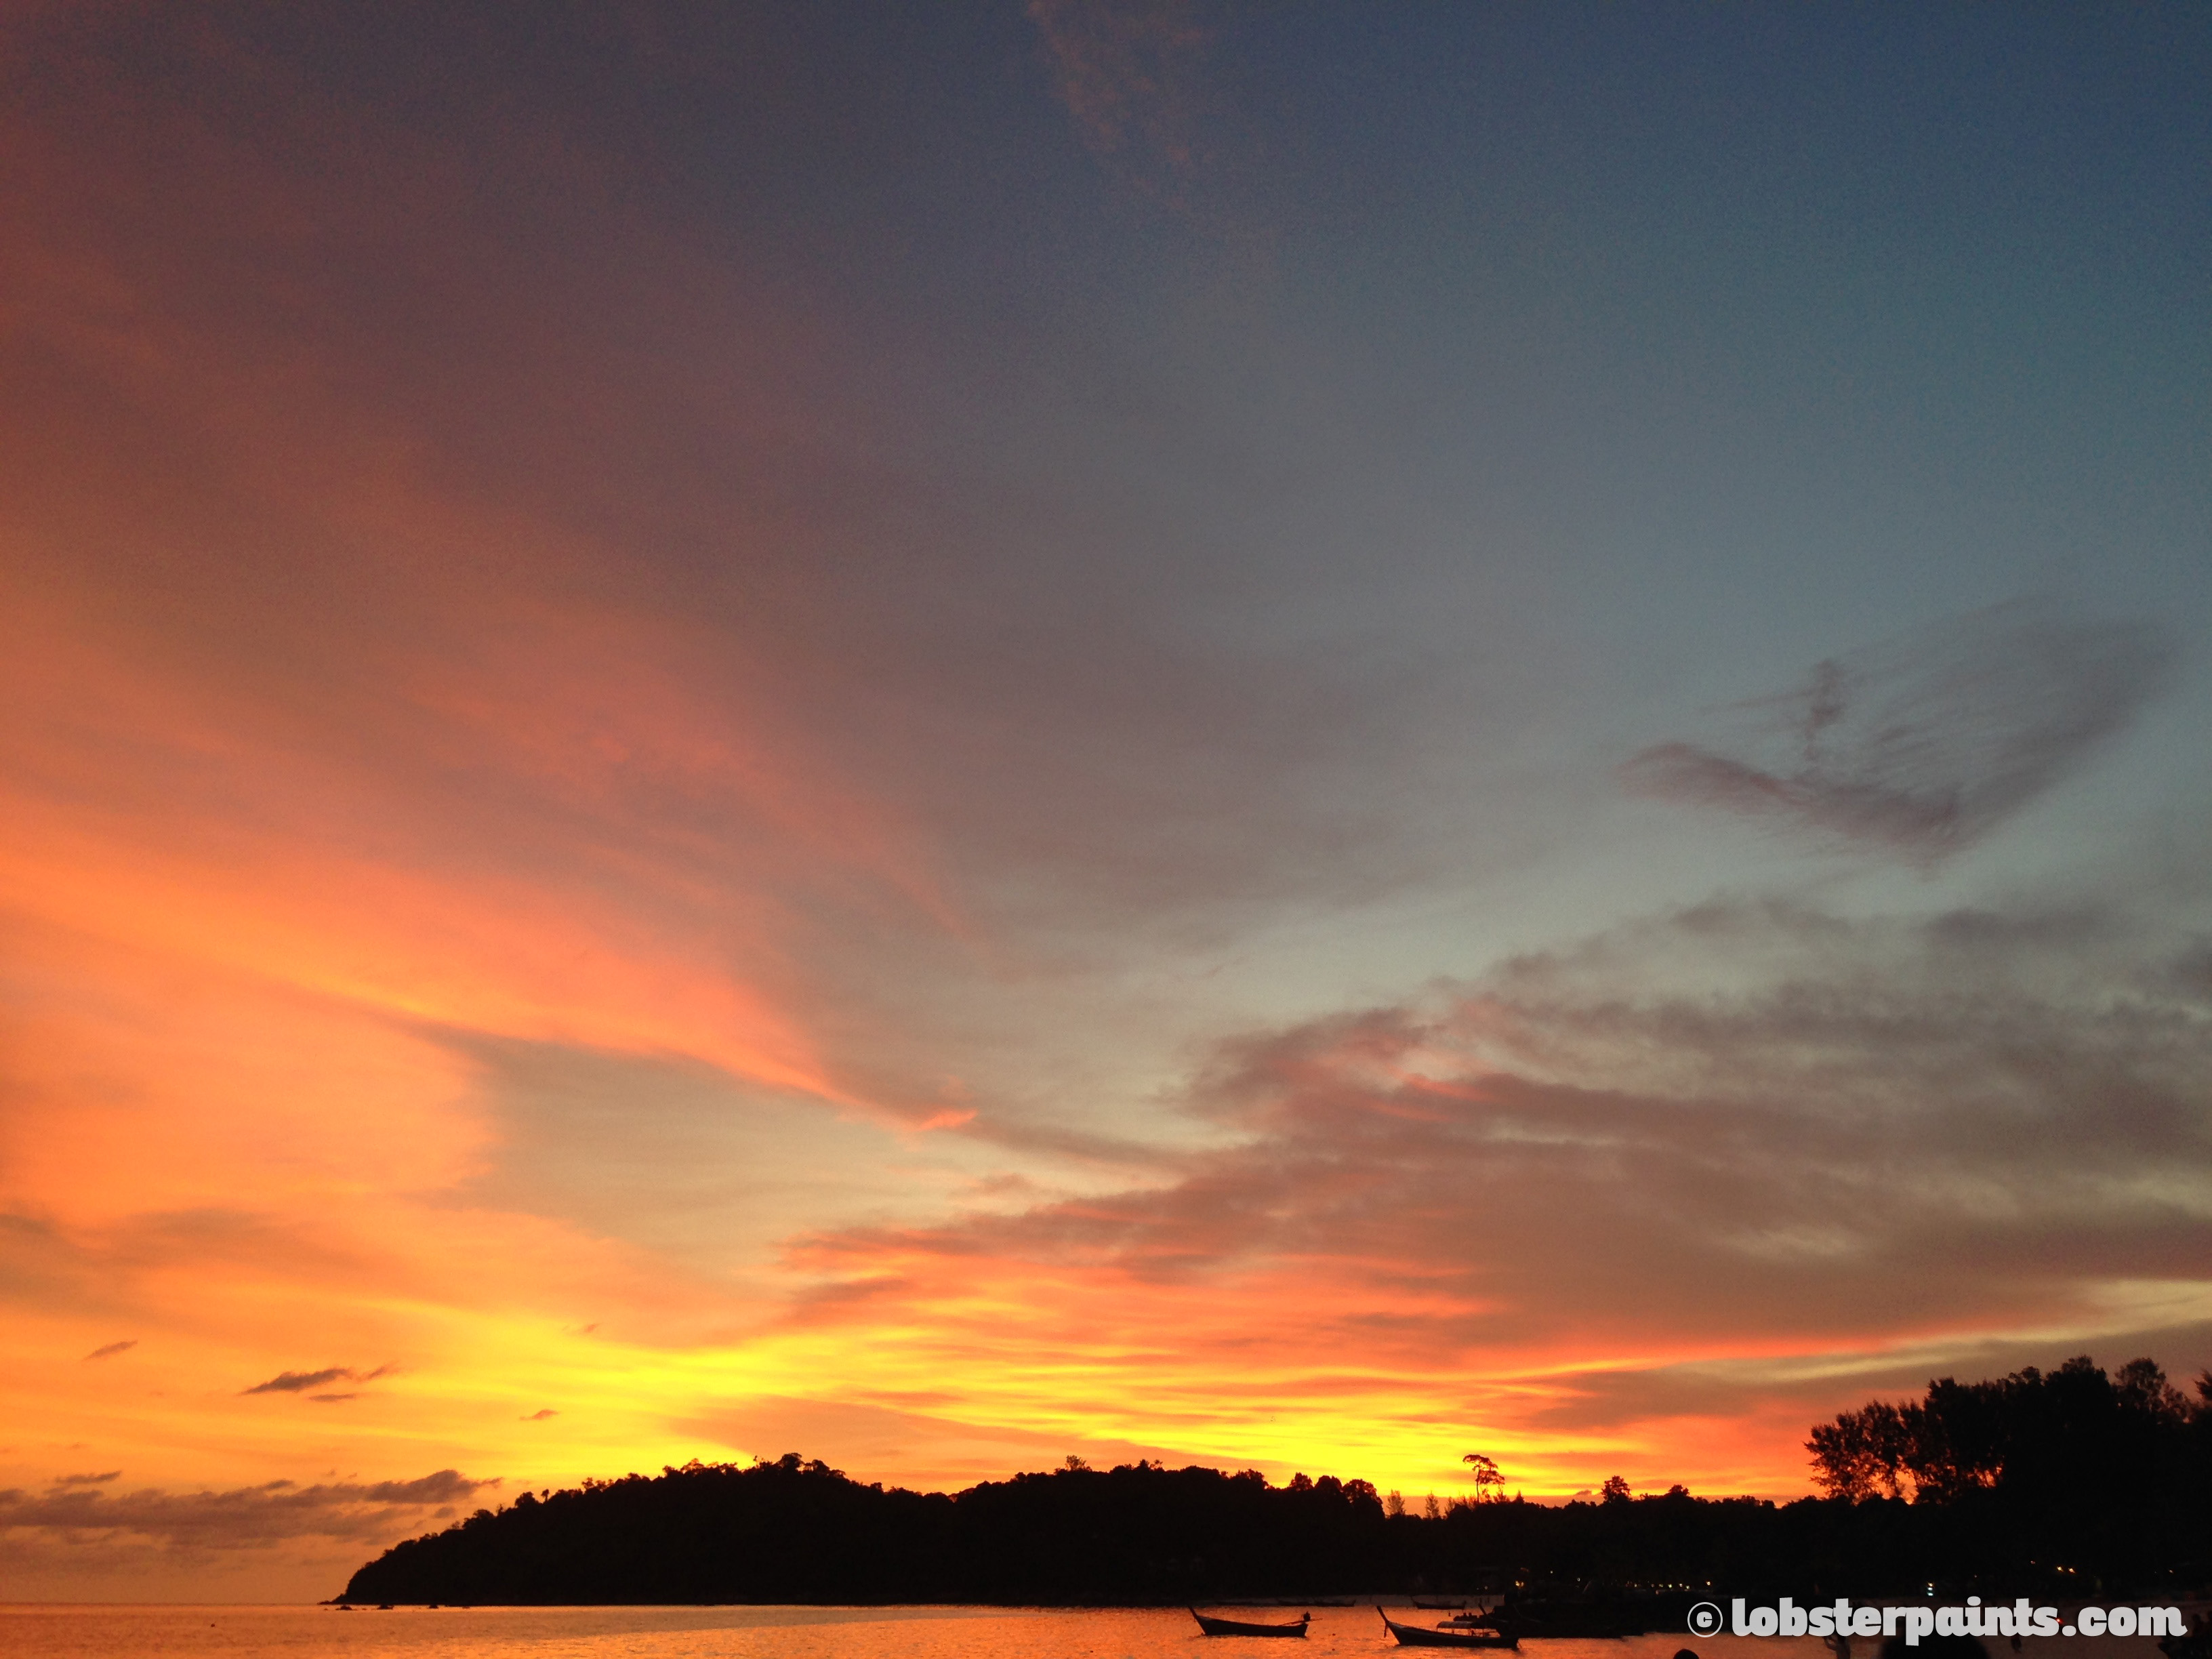 Sunset at Pattaya Beach | Koh Lipe, Thailand